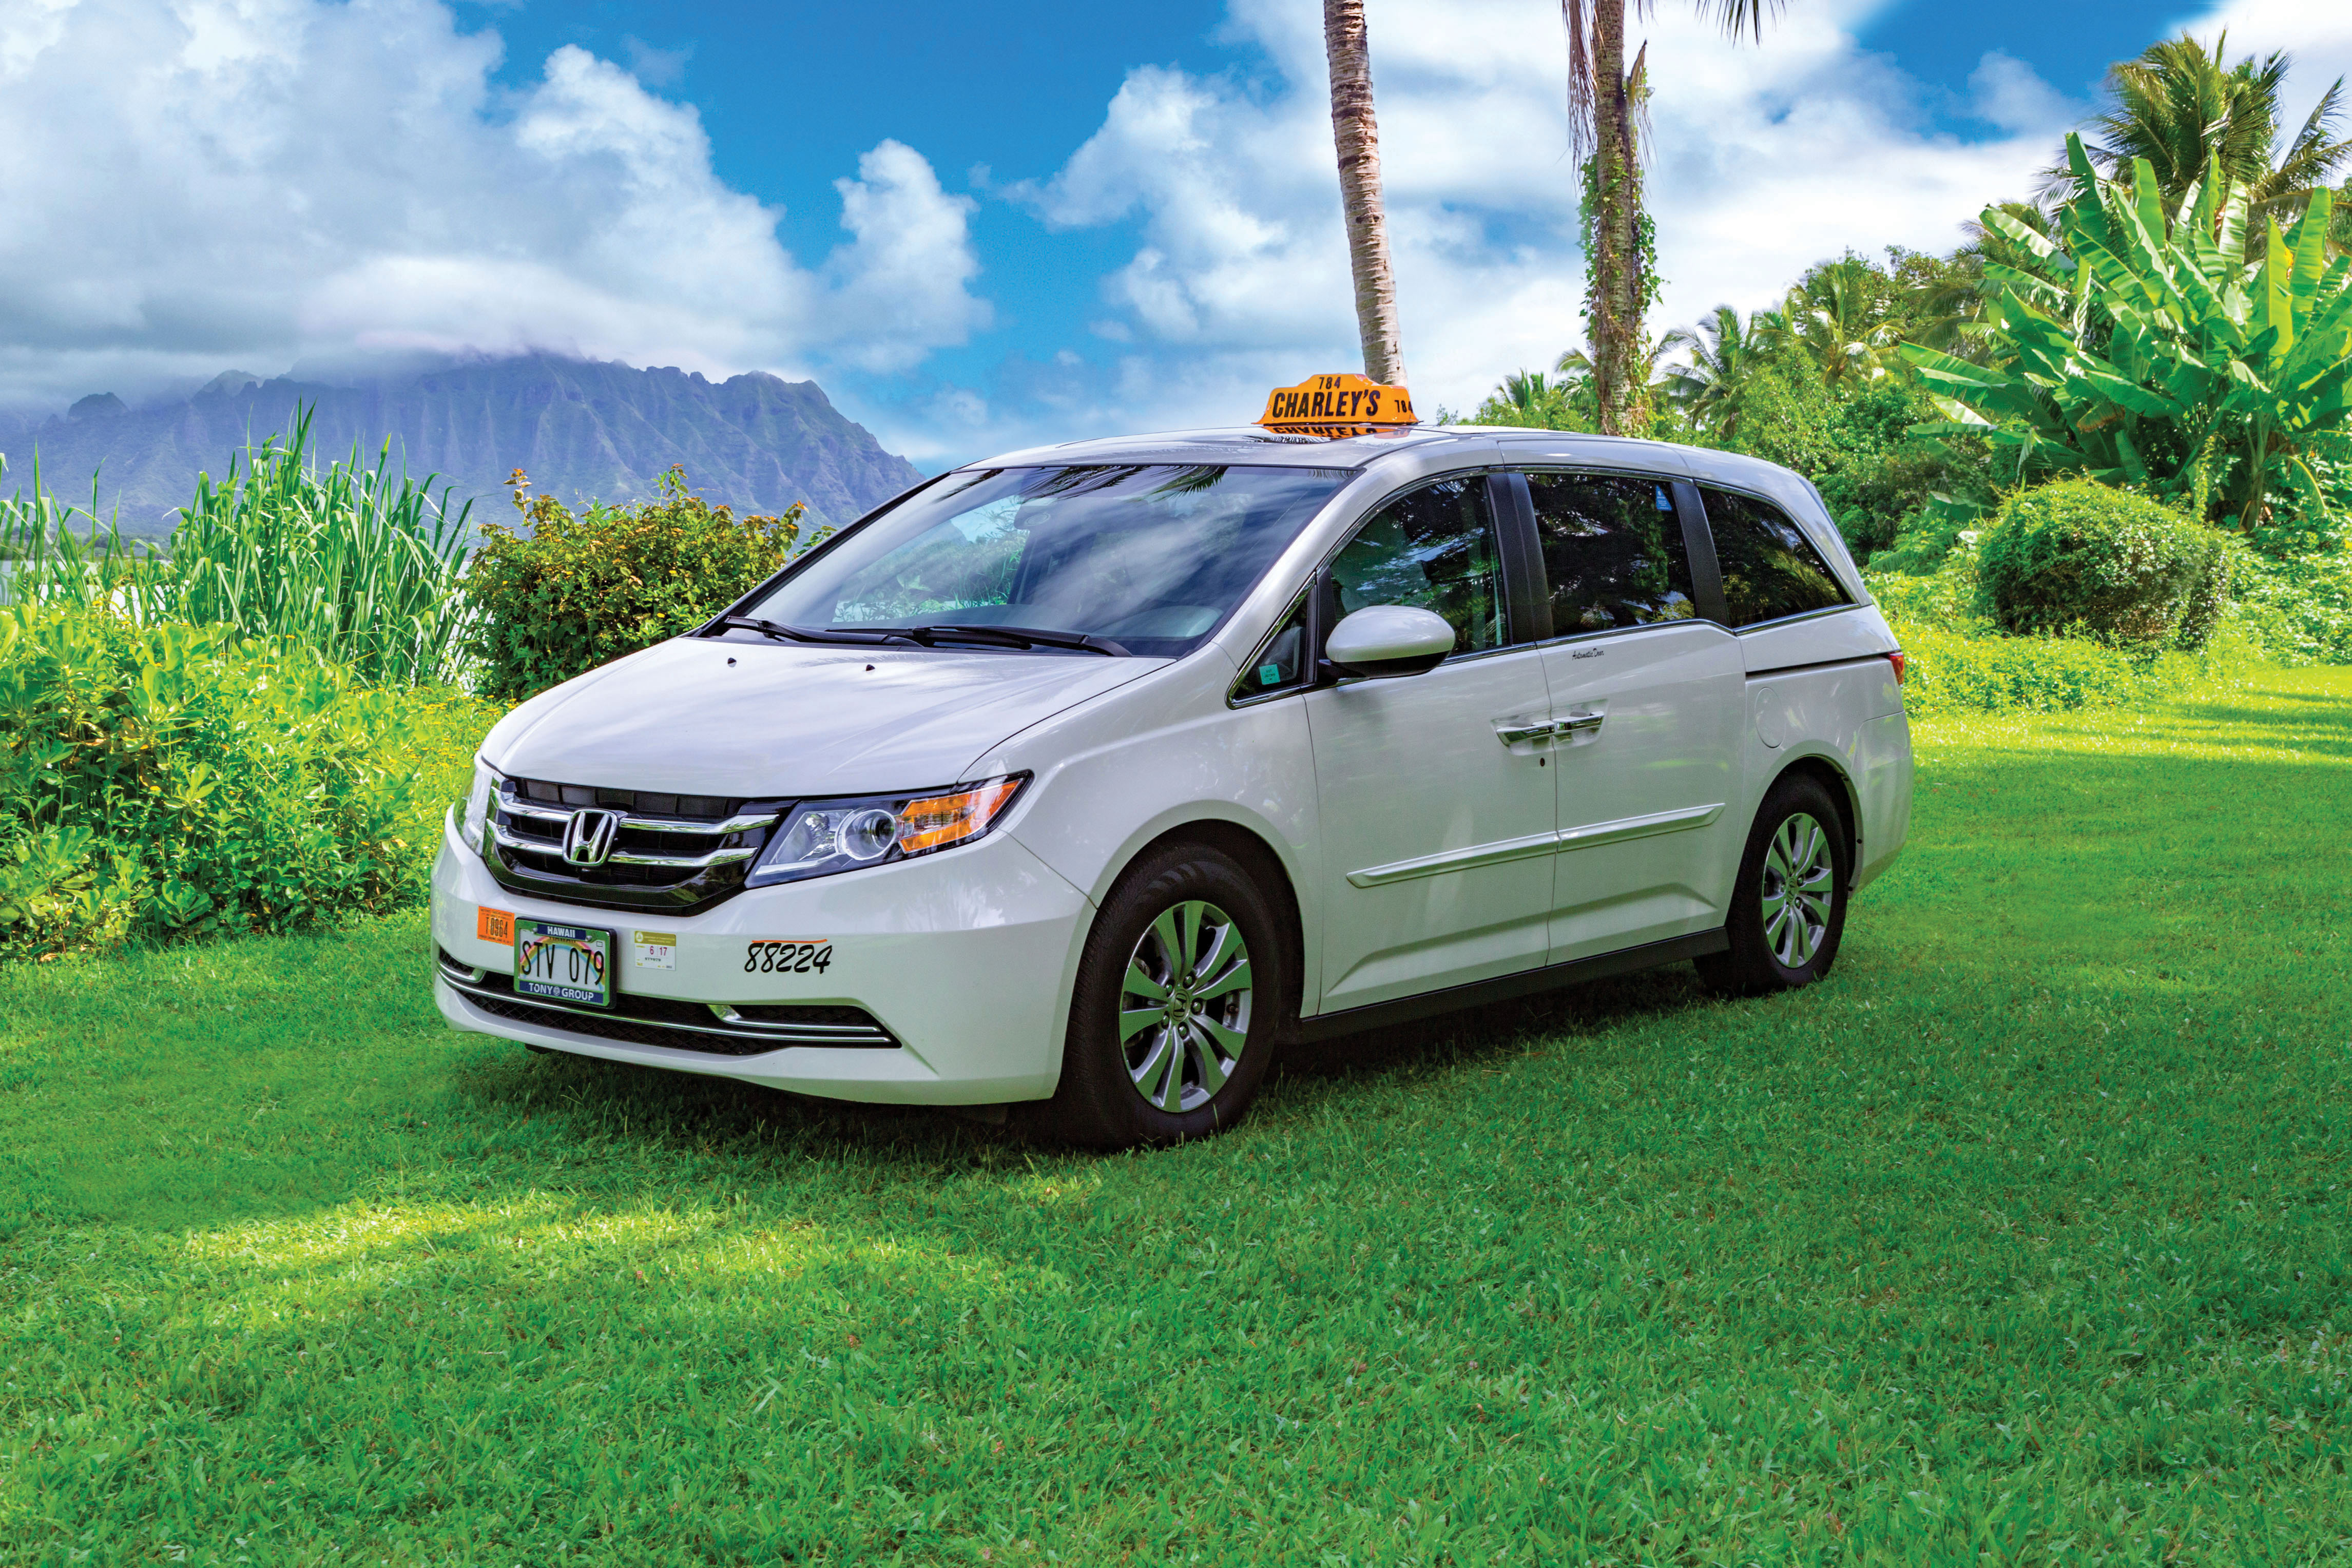 How to Get from Honolulu Airport to Waikiki Easily, tips featured by top Hawaii blog, Hawaii Travel with Kids: https://hawaiitravelwithkids.com/wp-content/uploads/2020/05/Charleys-Taxi-Honda-Odyssey-w-o-driver_160809-170_RGB.jpg